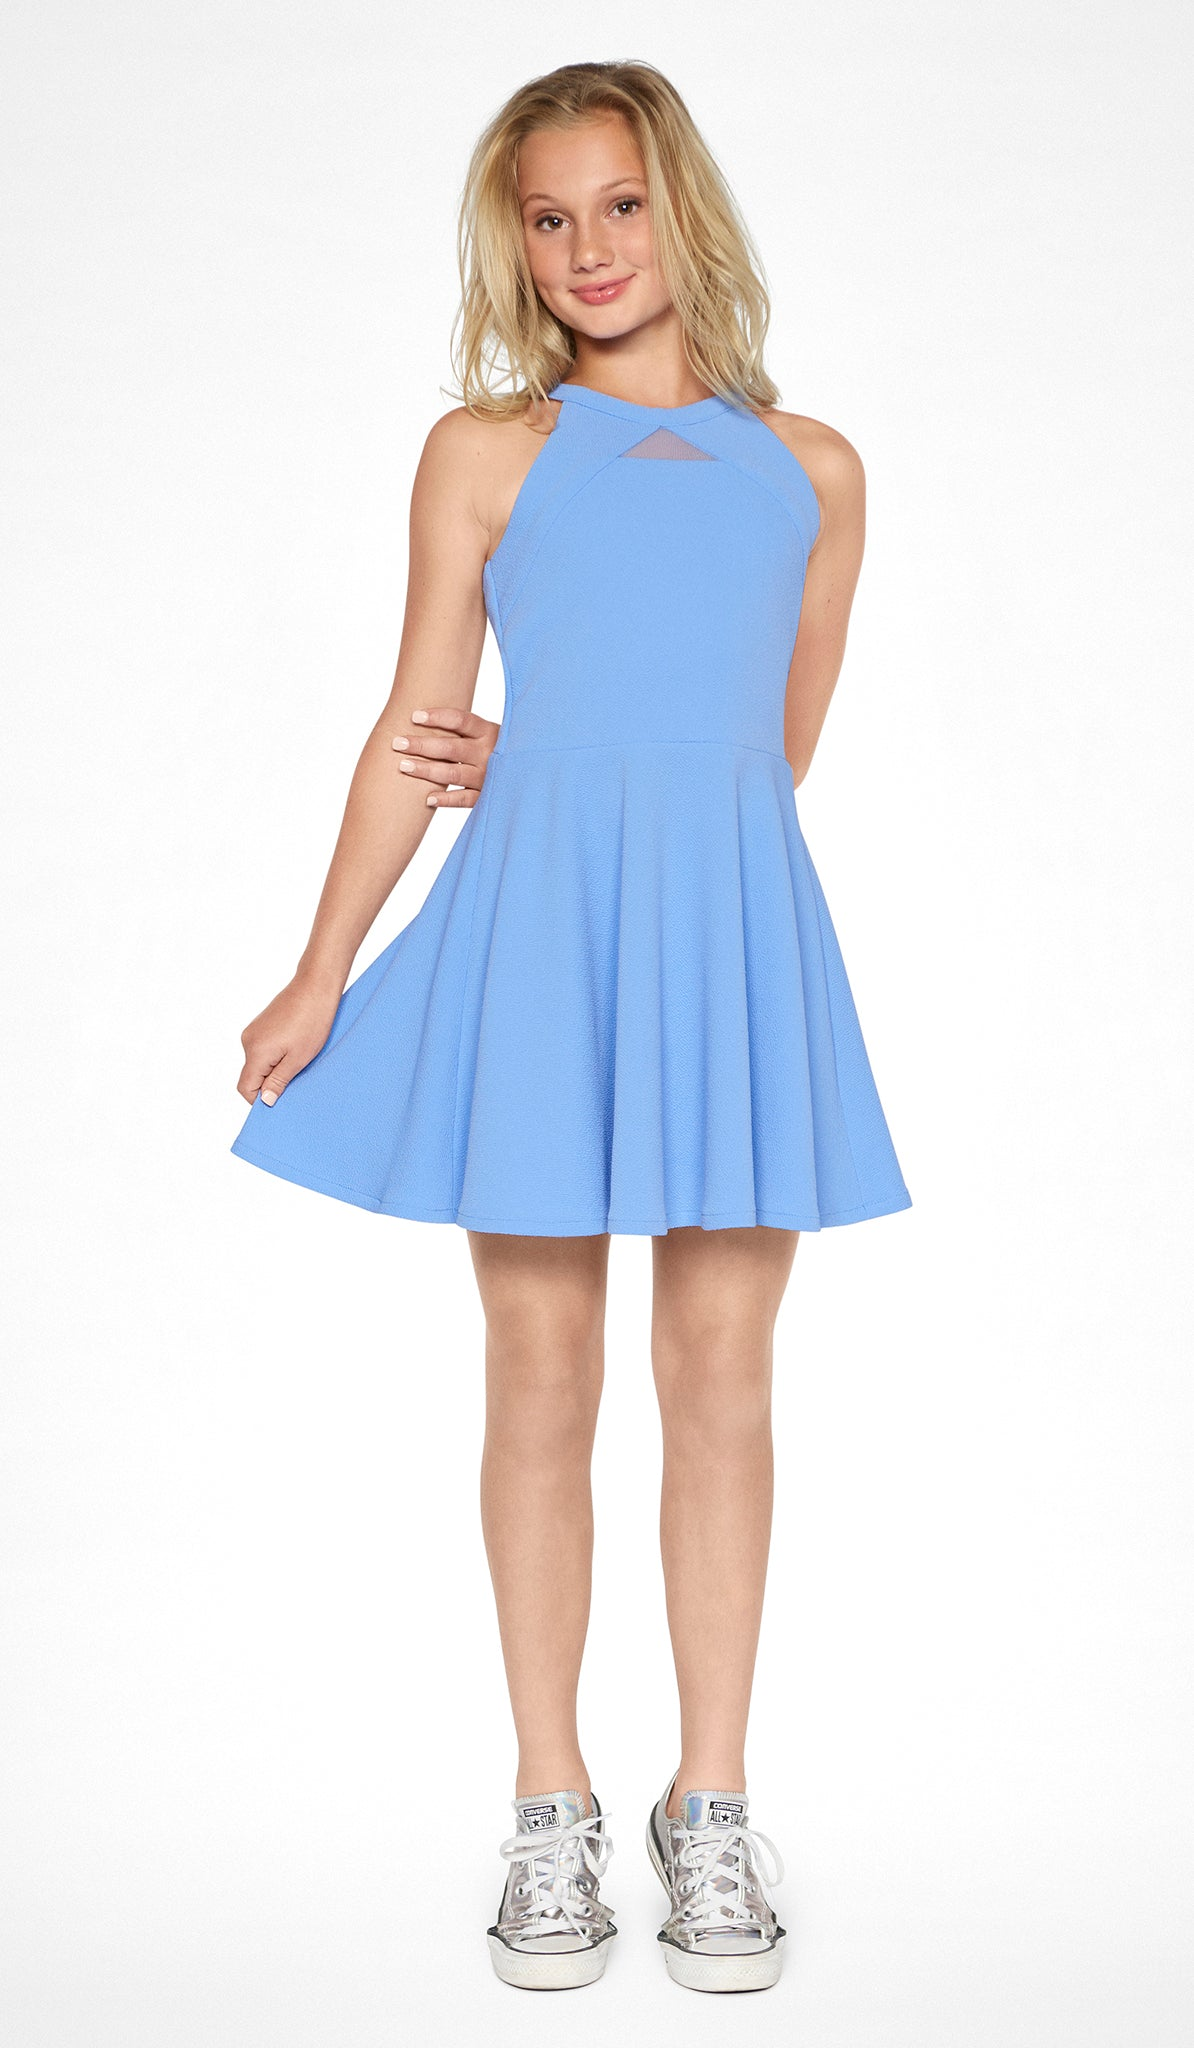 2a7b6f0c5a7 Junior Periwinkle textured knit fit and flare dress with self-colored  blocking and mesh detail